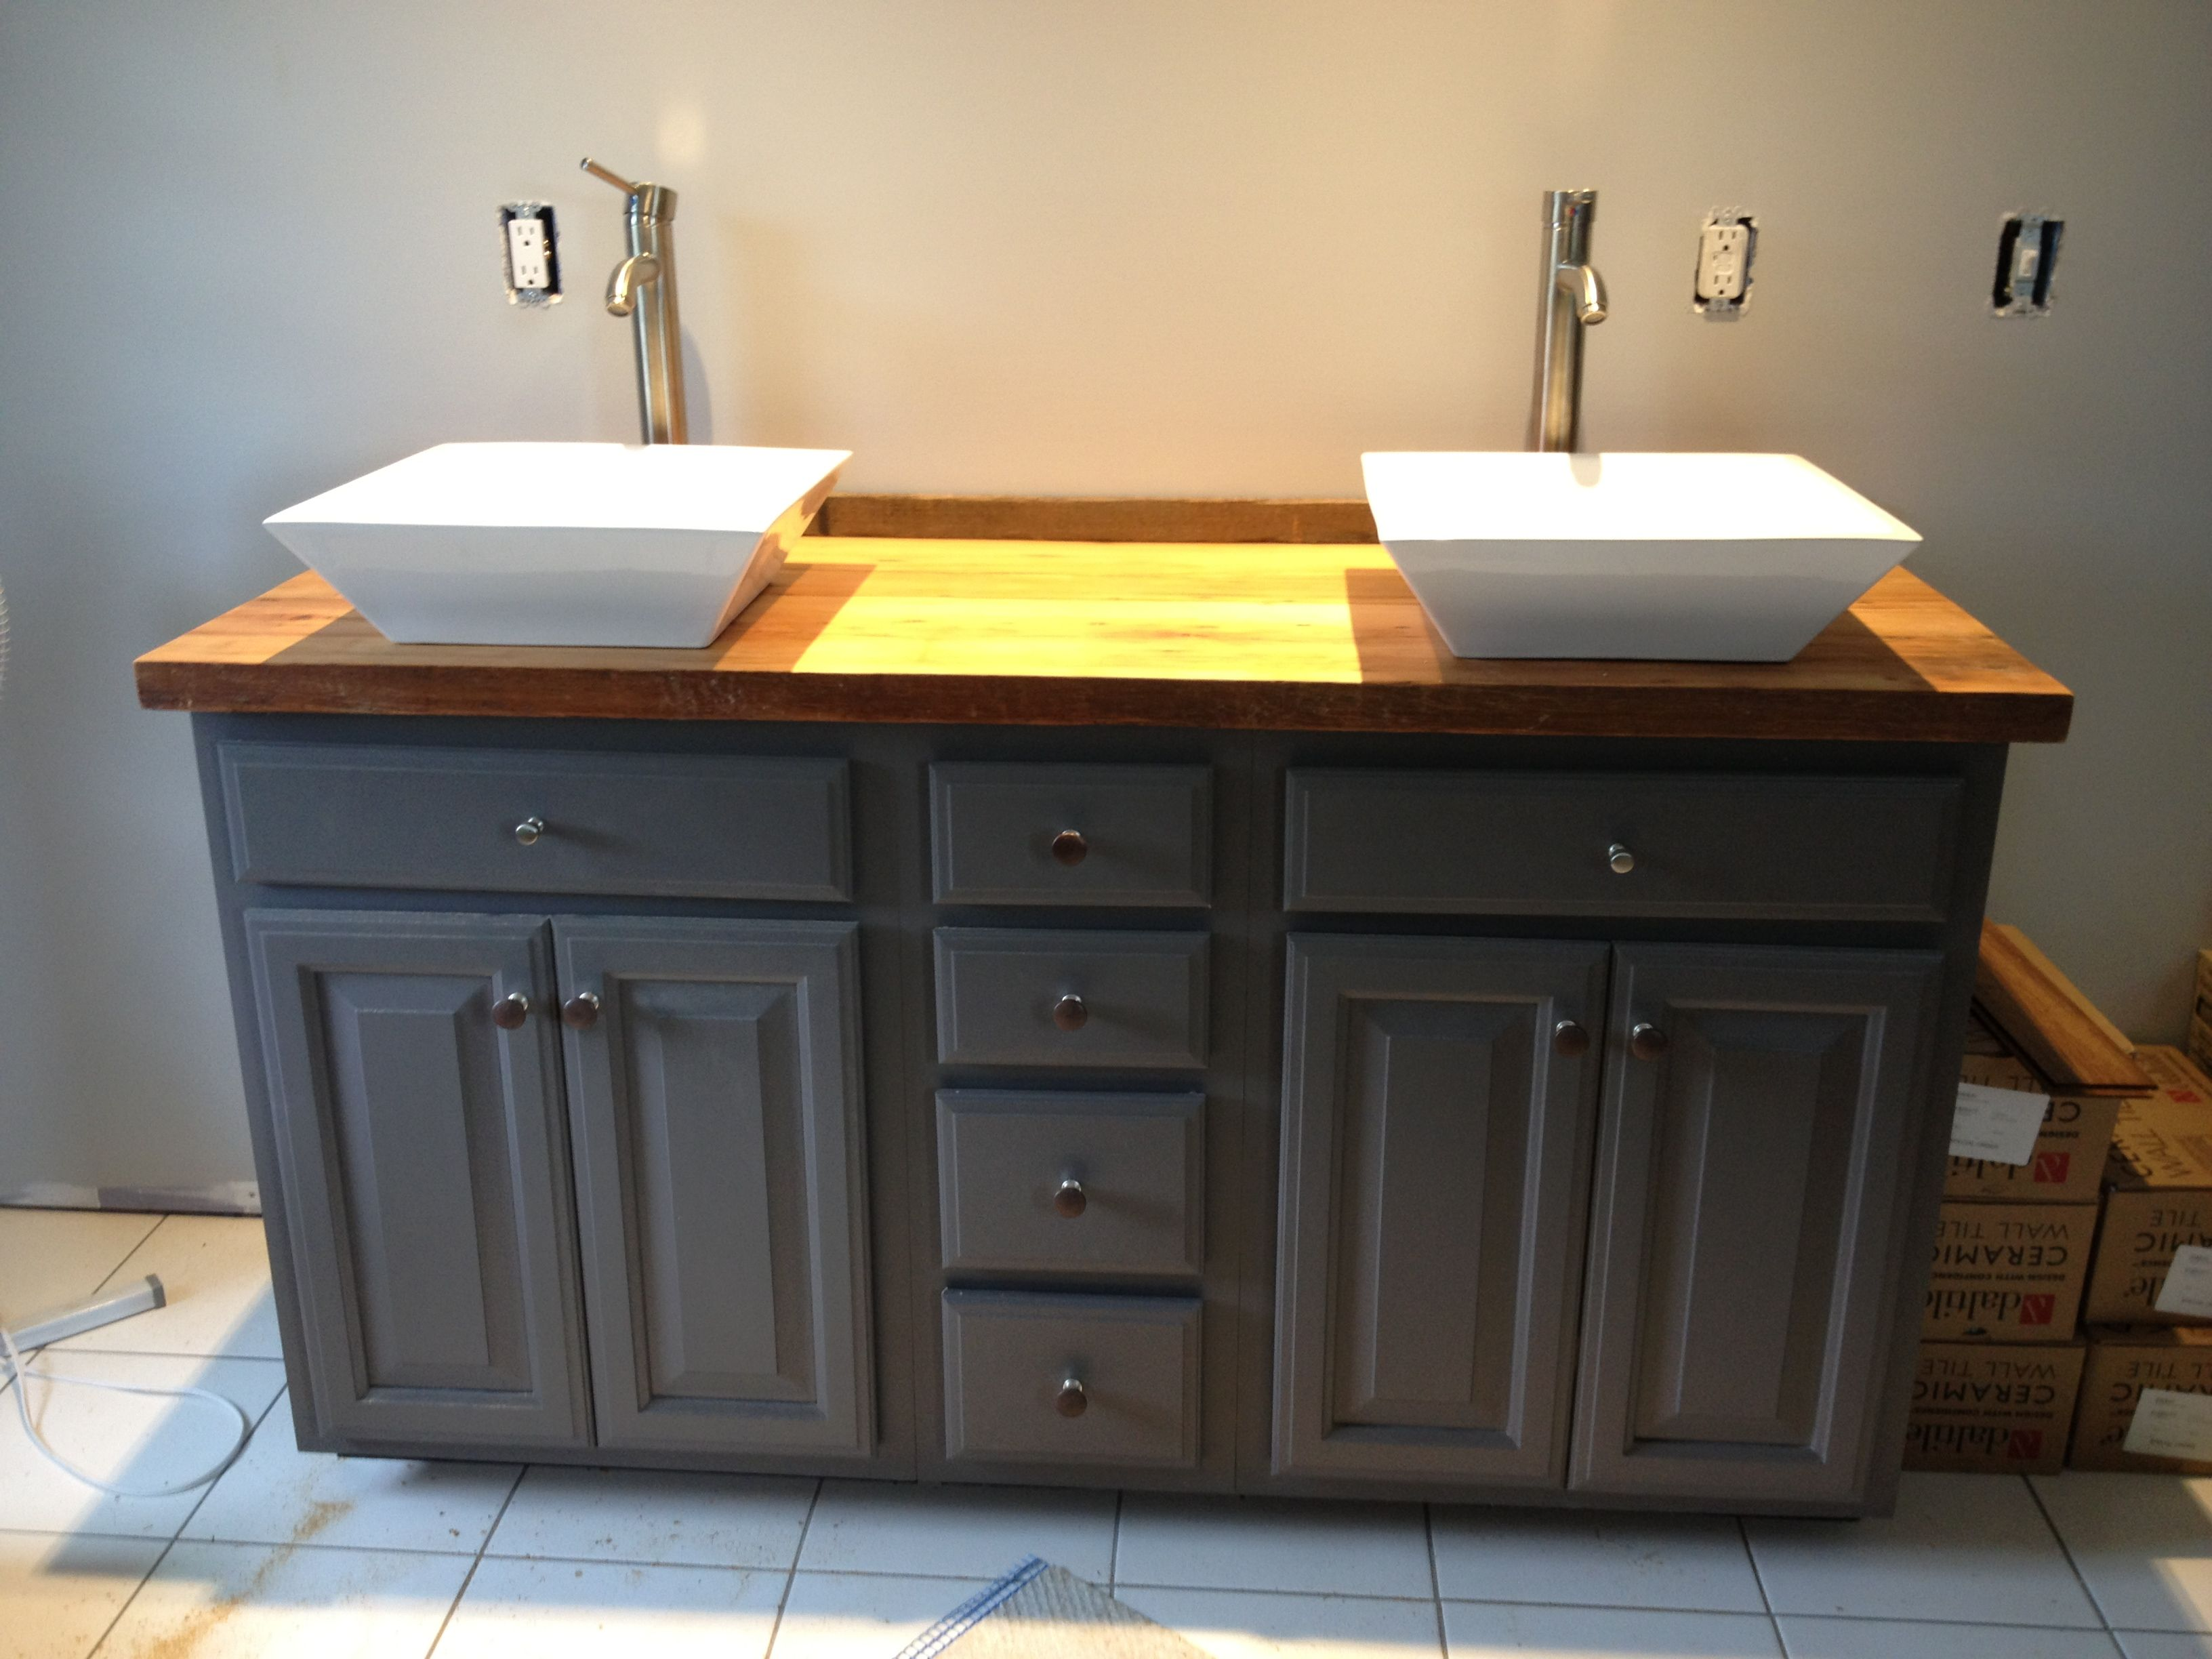 undermount depot sinks sink ideas with country modern pedestal made unique lowes rustic design custom vanity bathroom pine scountry vanities home vessel online